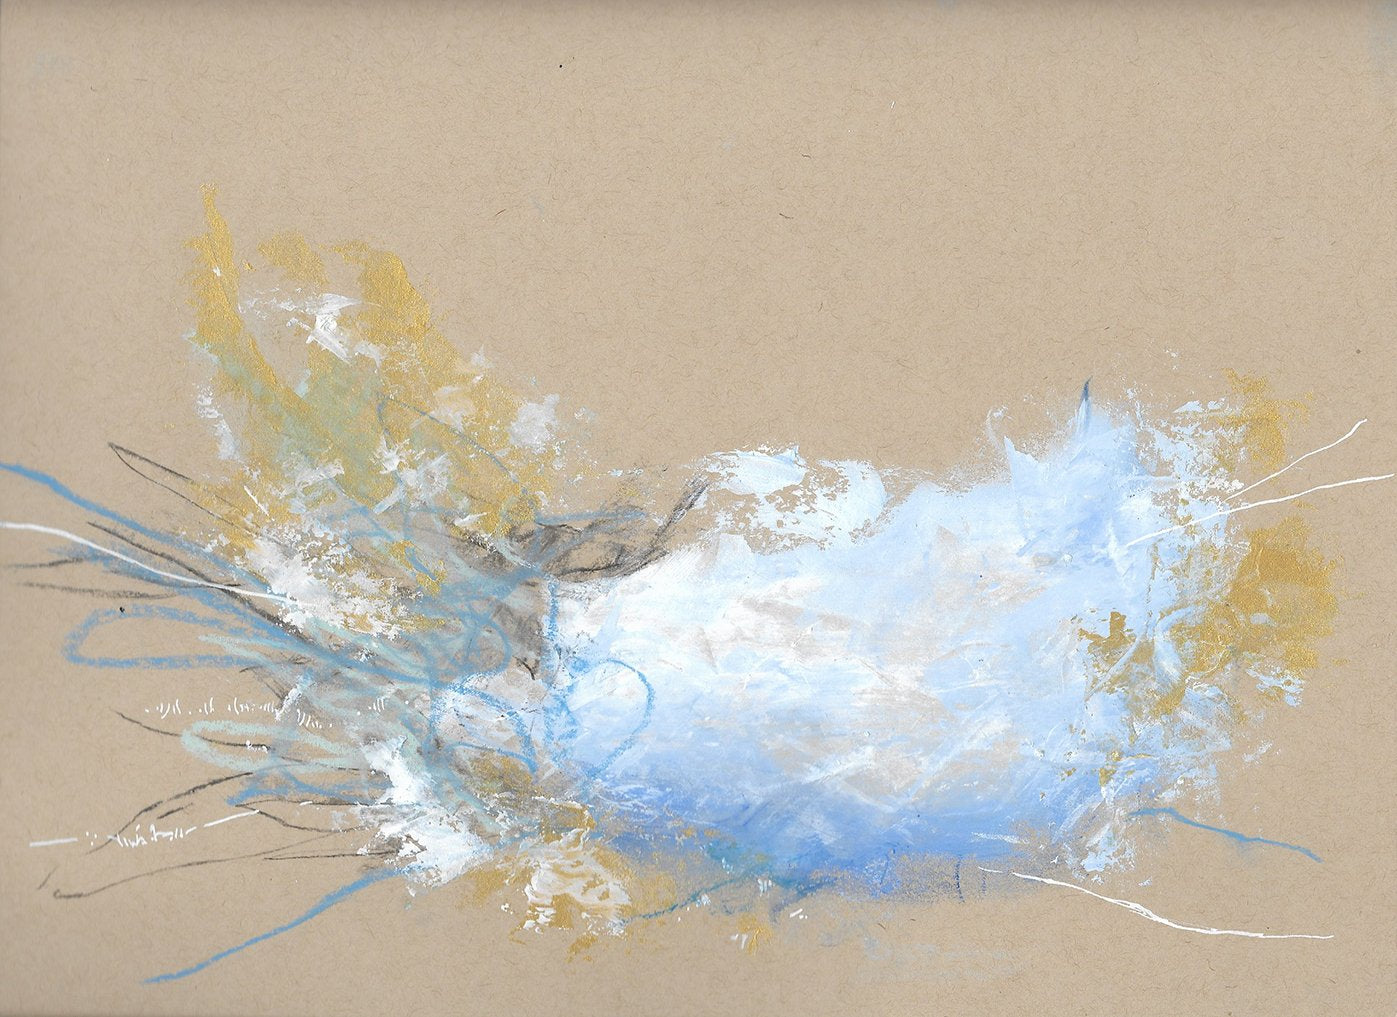 Cloudburst 4 Small Original Abstract Painting Sketch